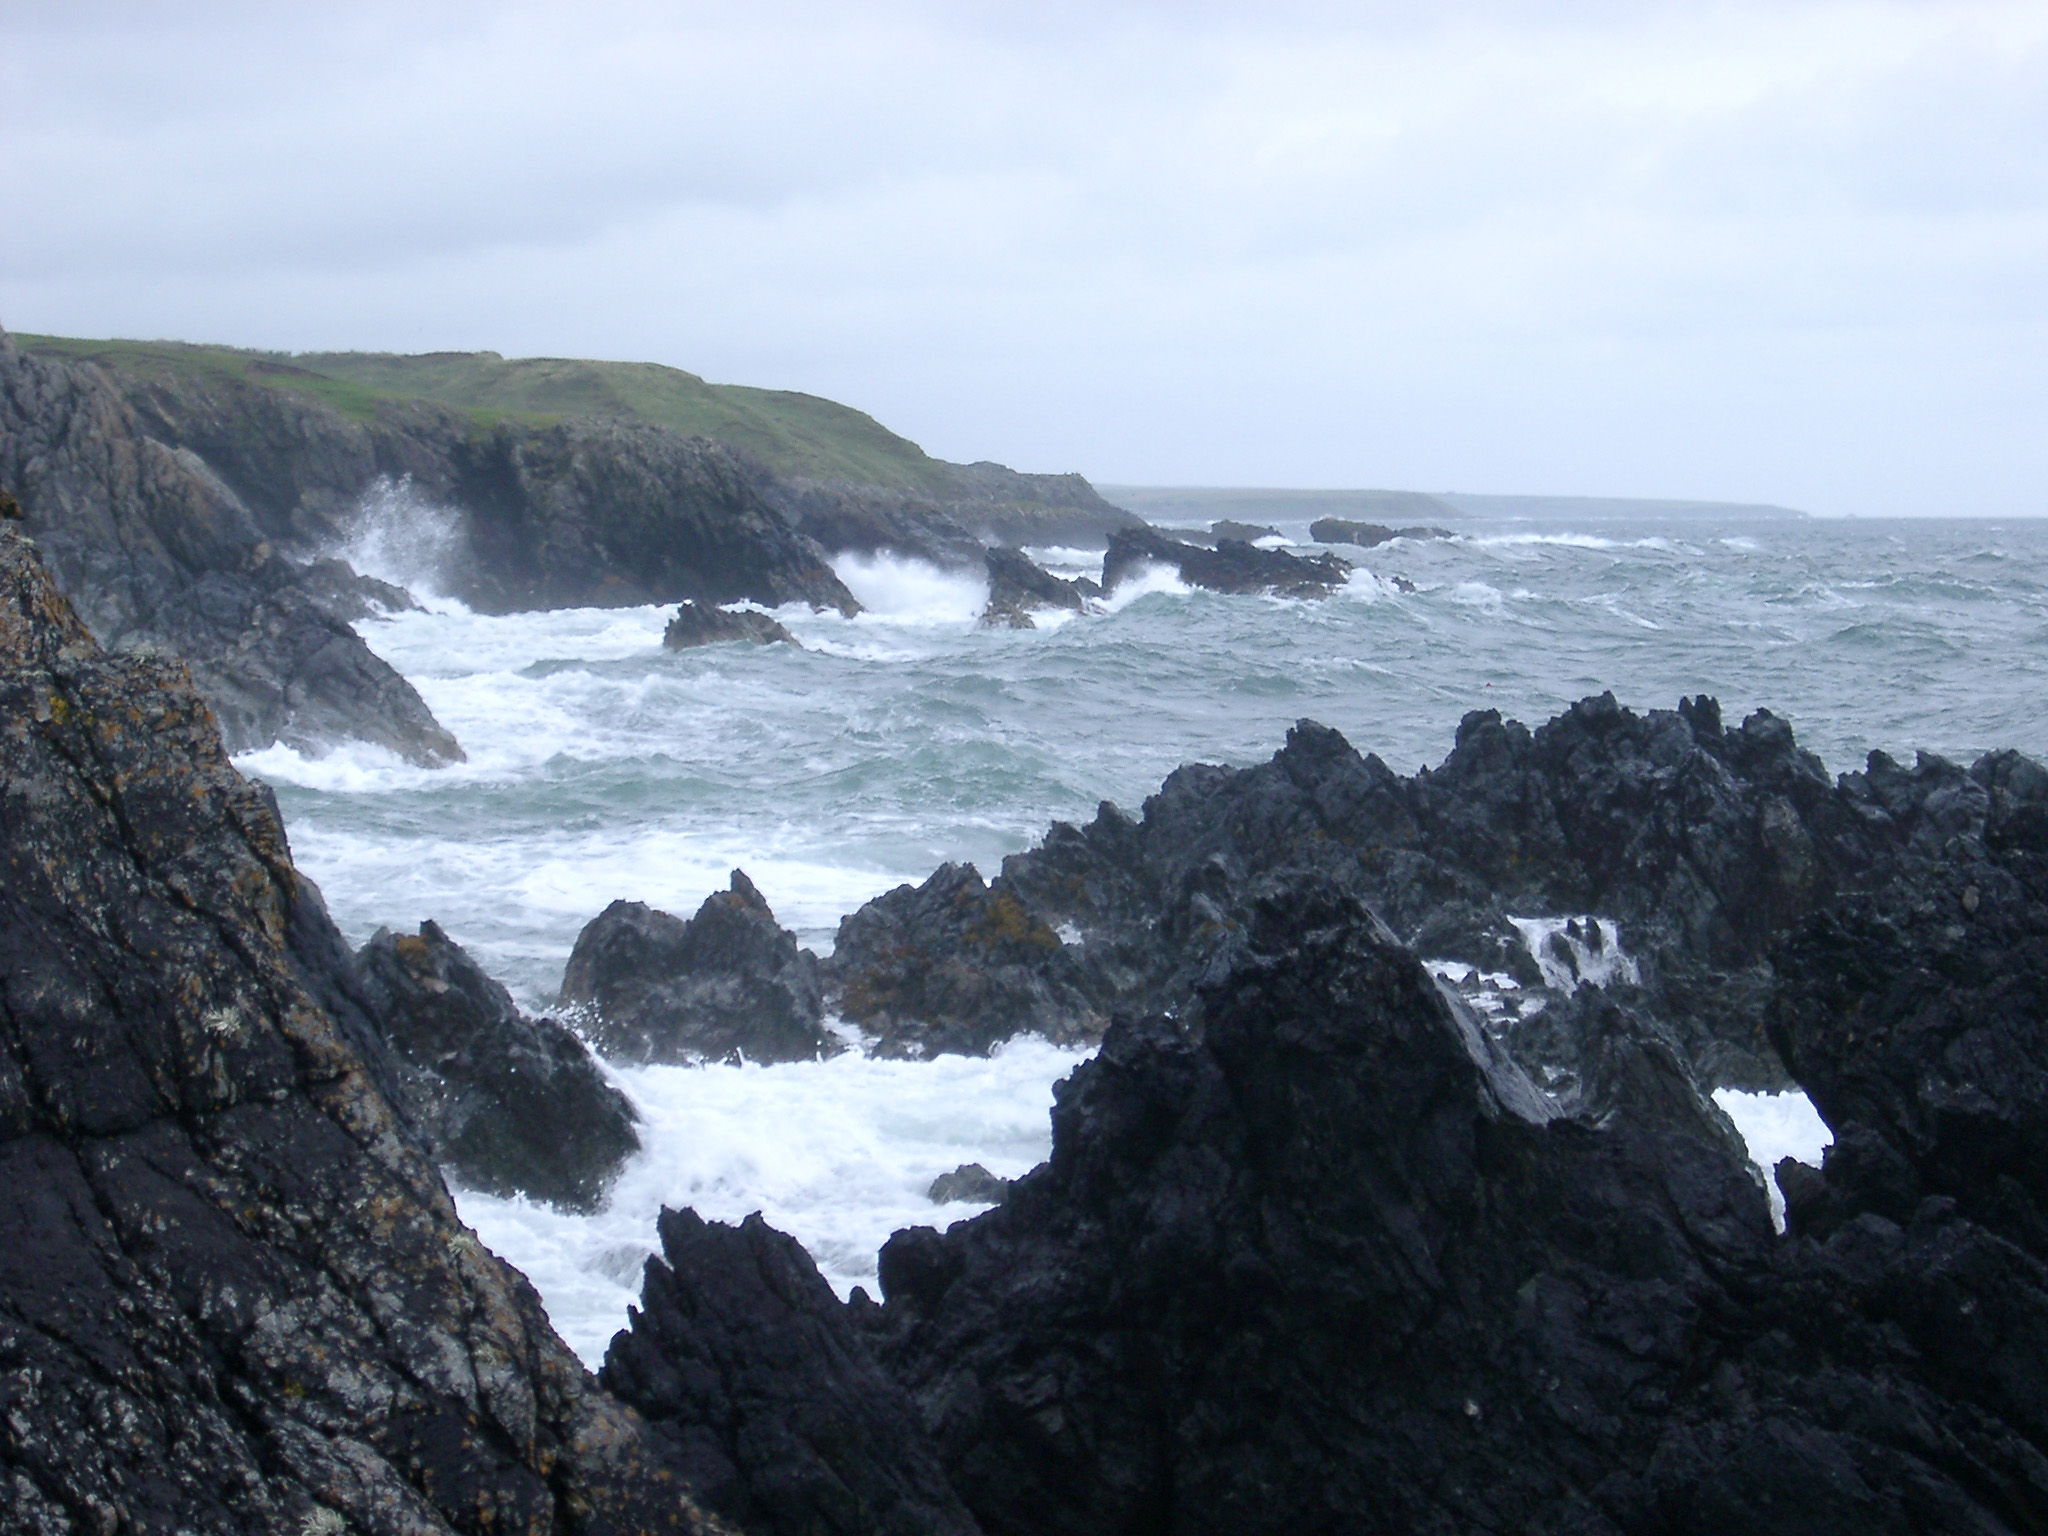 Stormy sea with waves pounding a rocky coastline on an overcast misty day